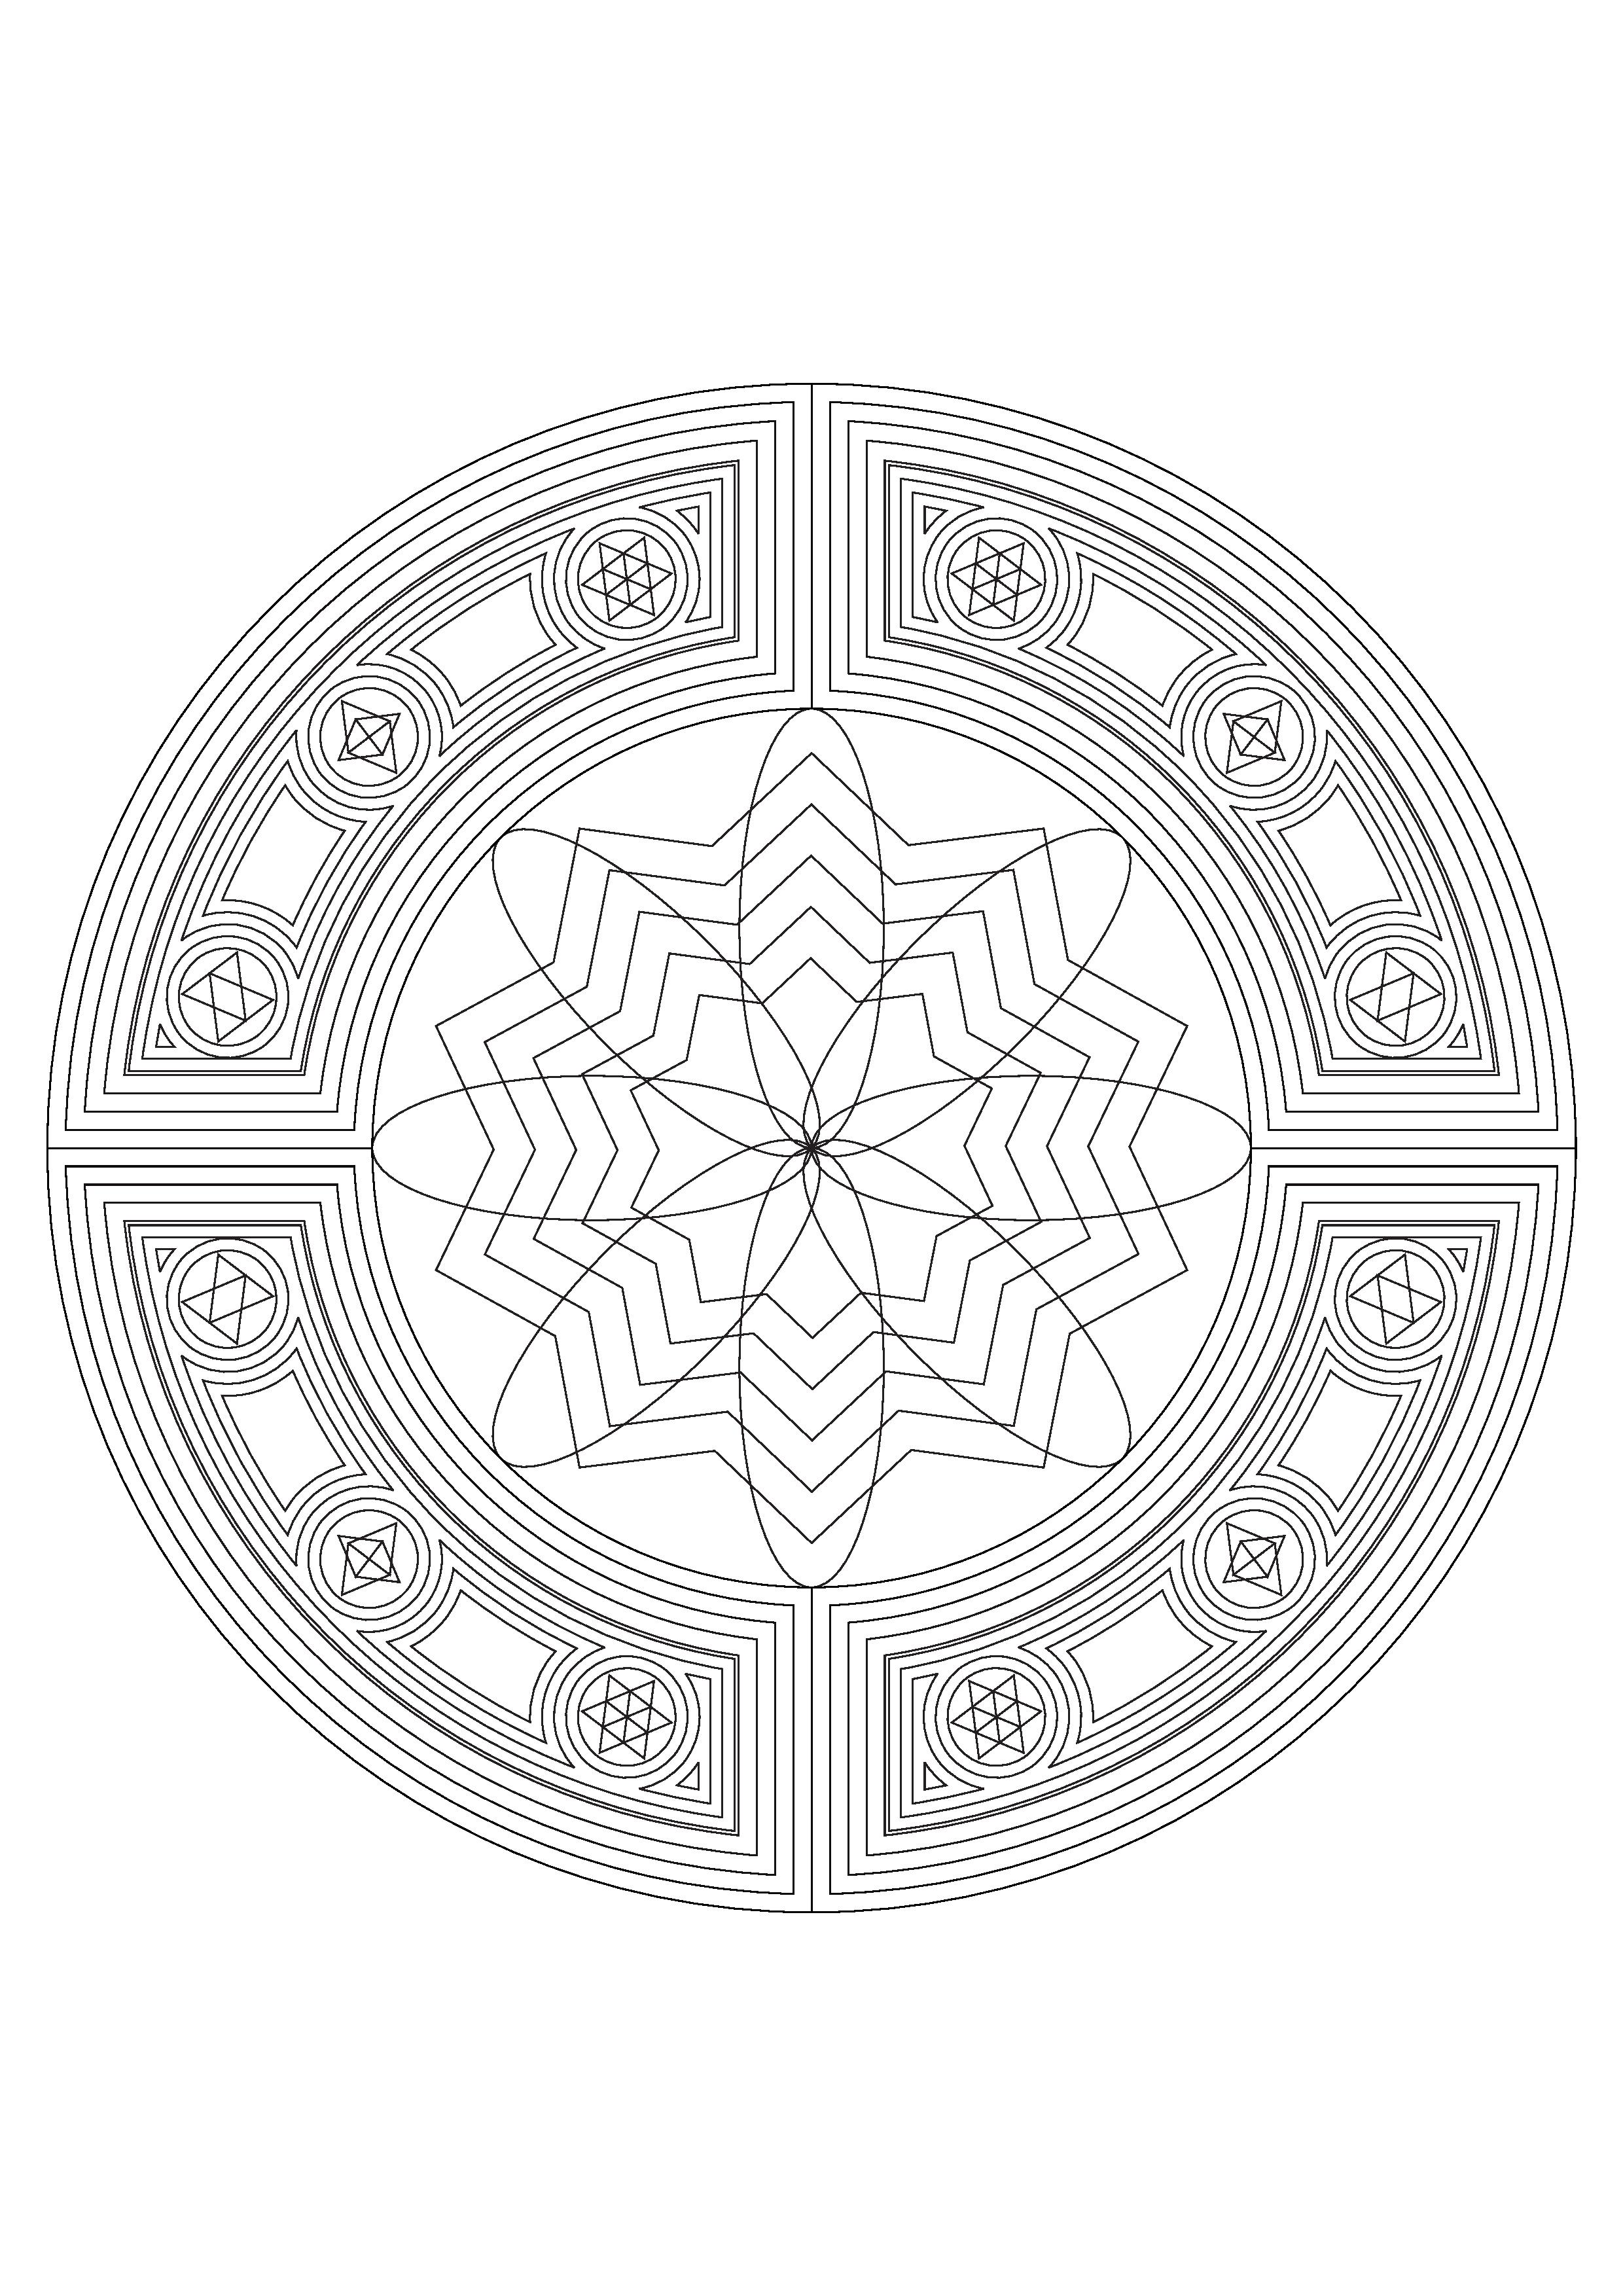 mandala coloring pages mandala mandala to download in pdf 6 mandalas adult coloring pages coloring pages mandala mandala